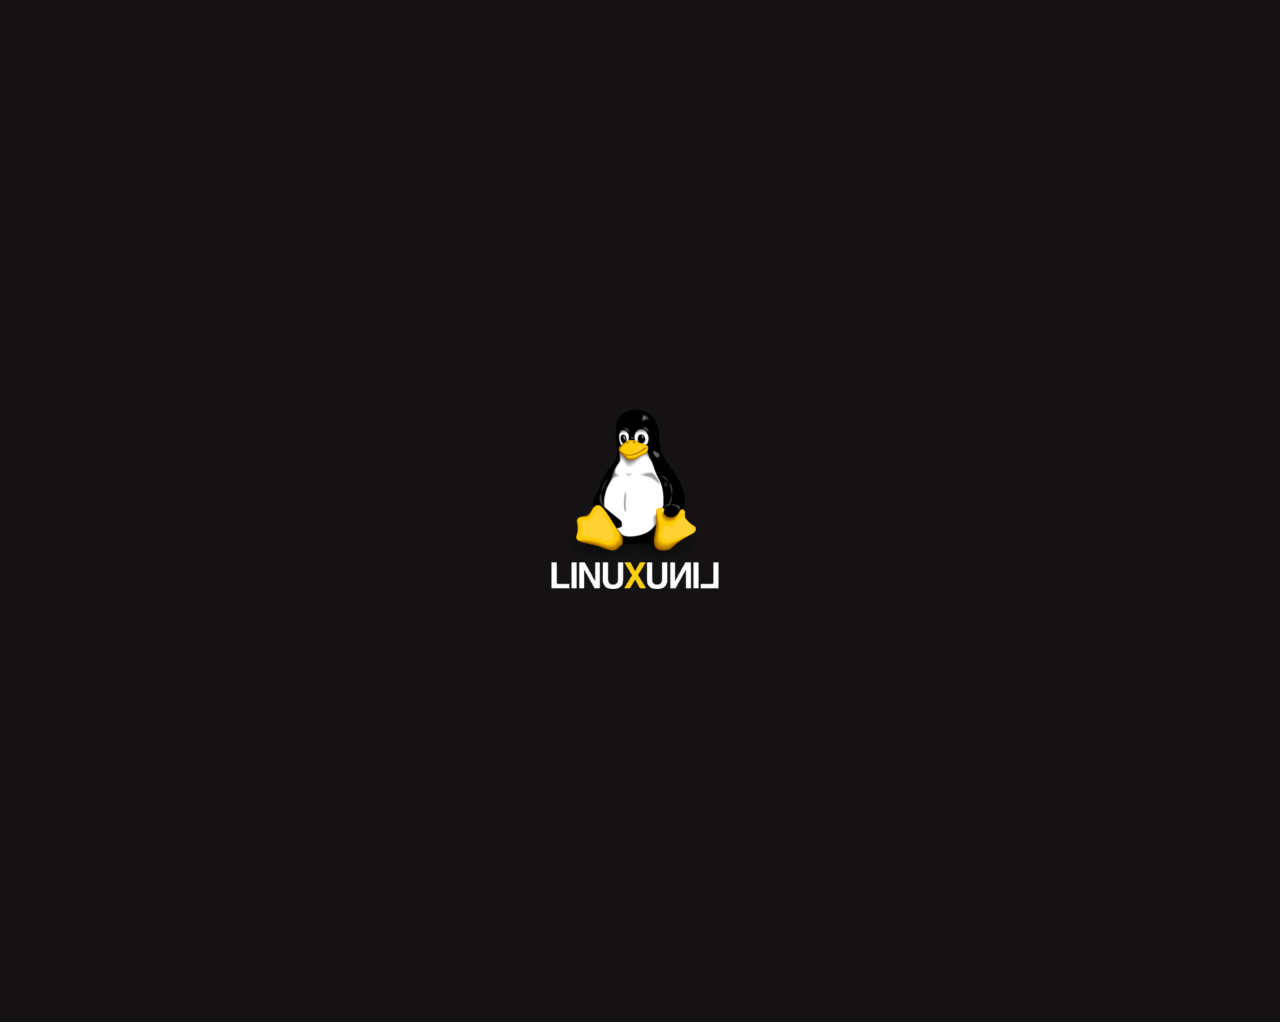 Linux Tux Wallpapers - Wallpaper Cave